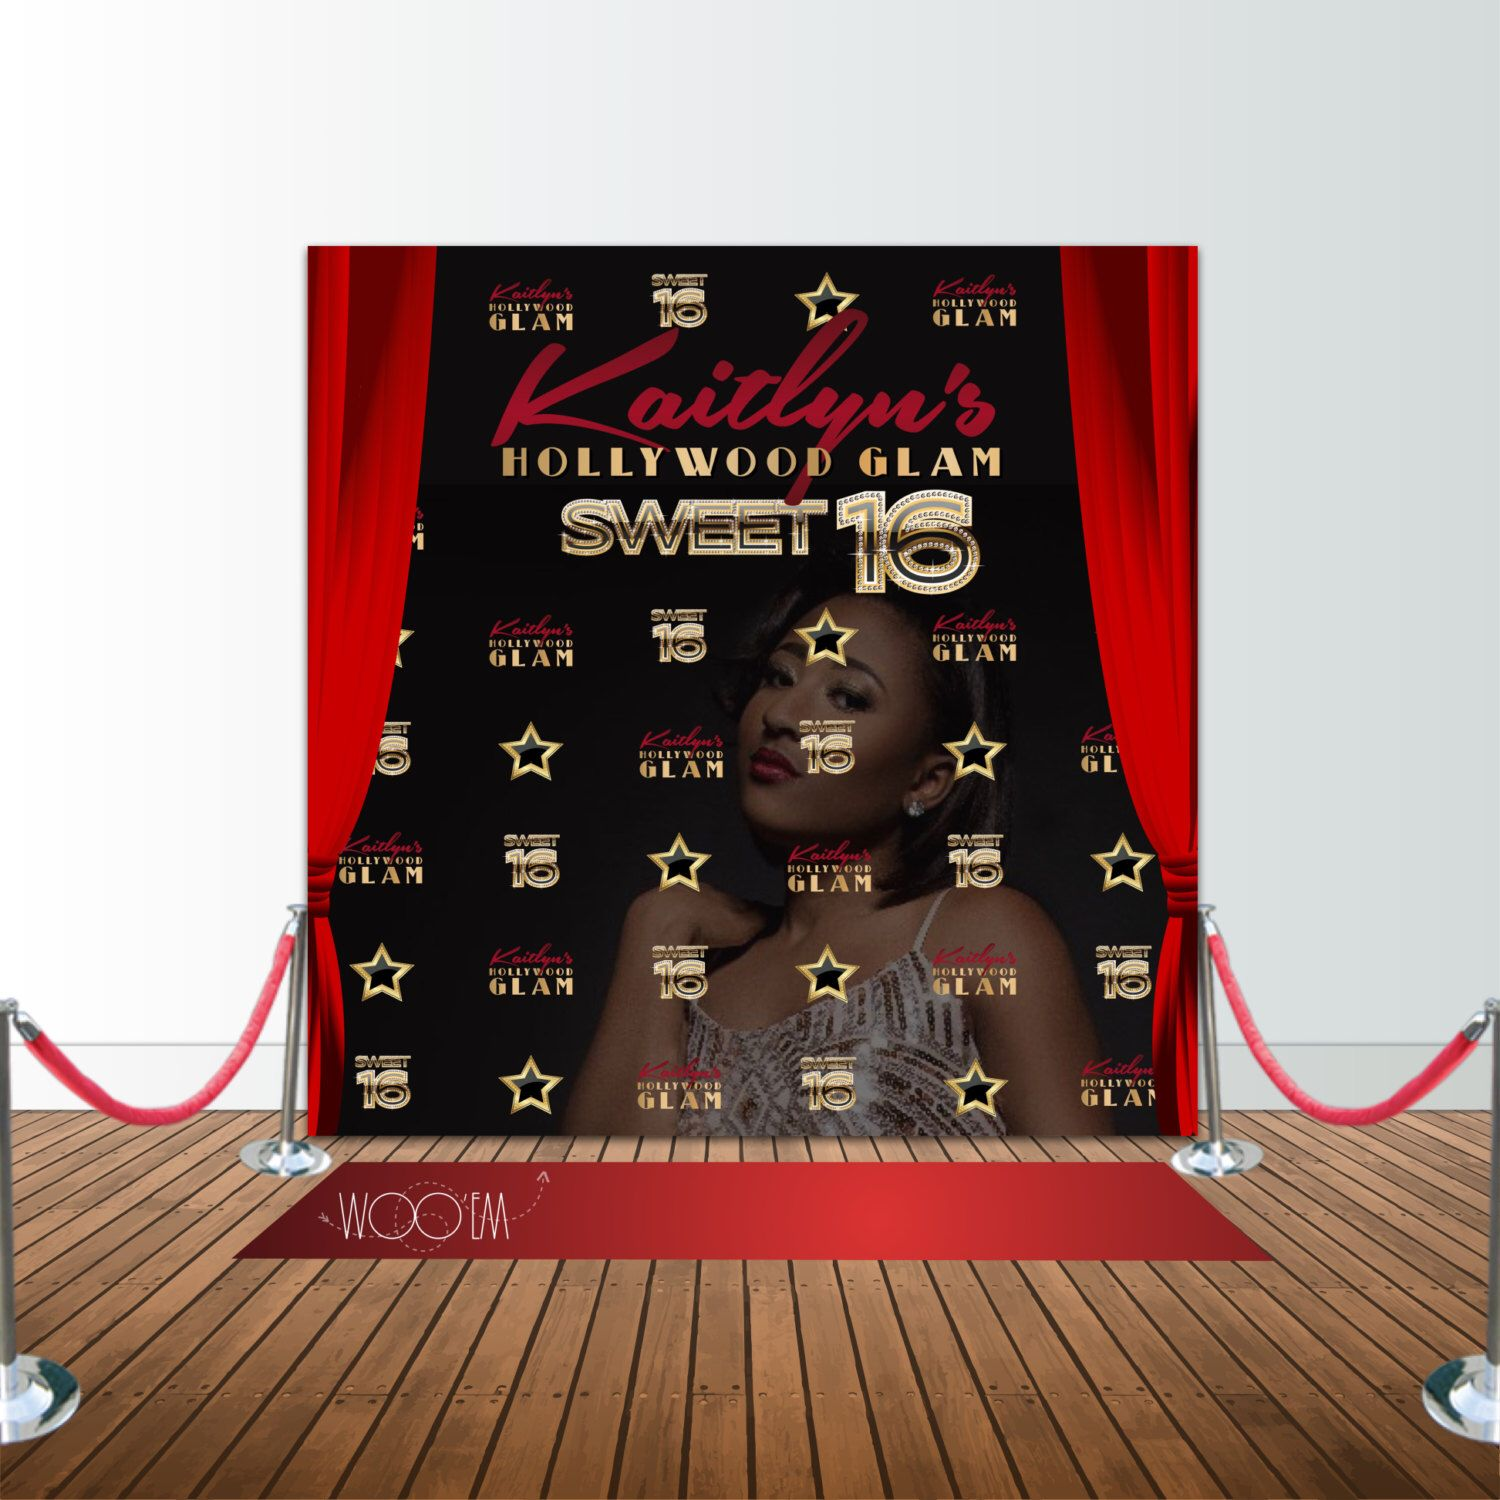 Hollywood Glam Sweet 16 Birthday 8x8 Backdrop Step & Repeat